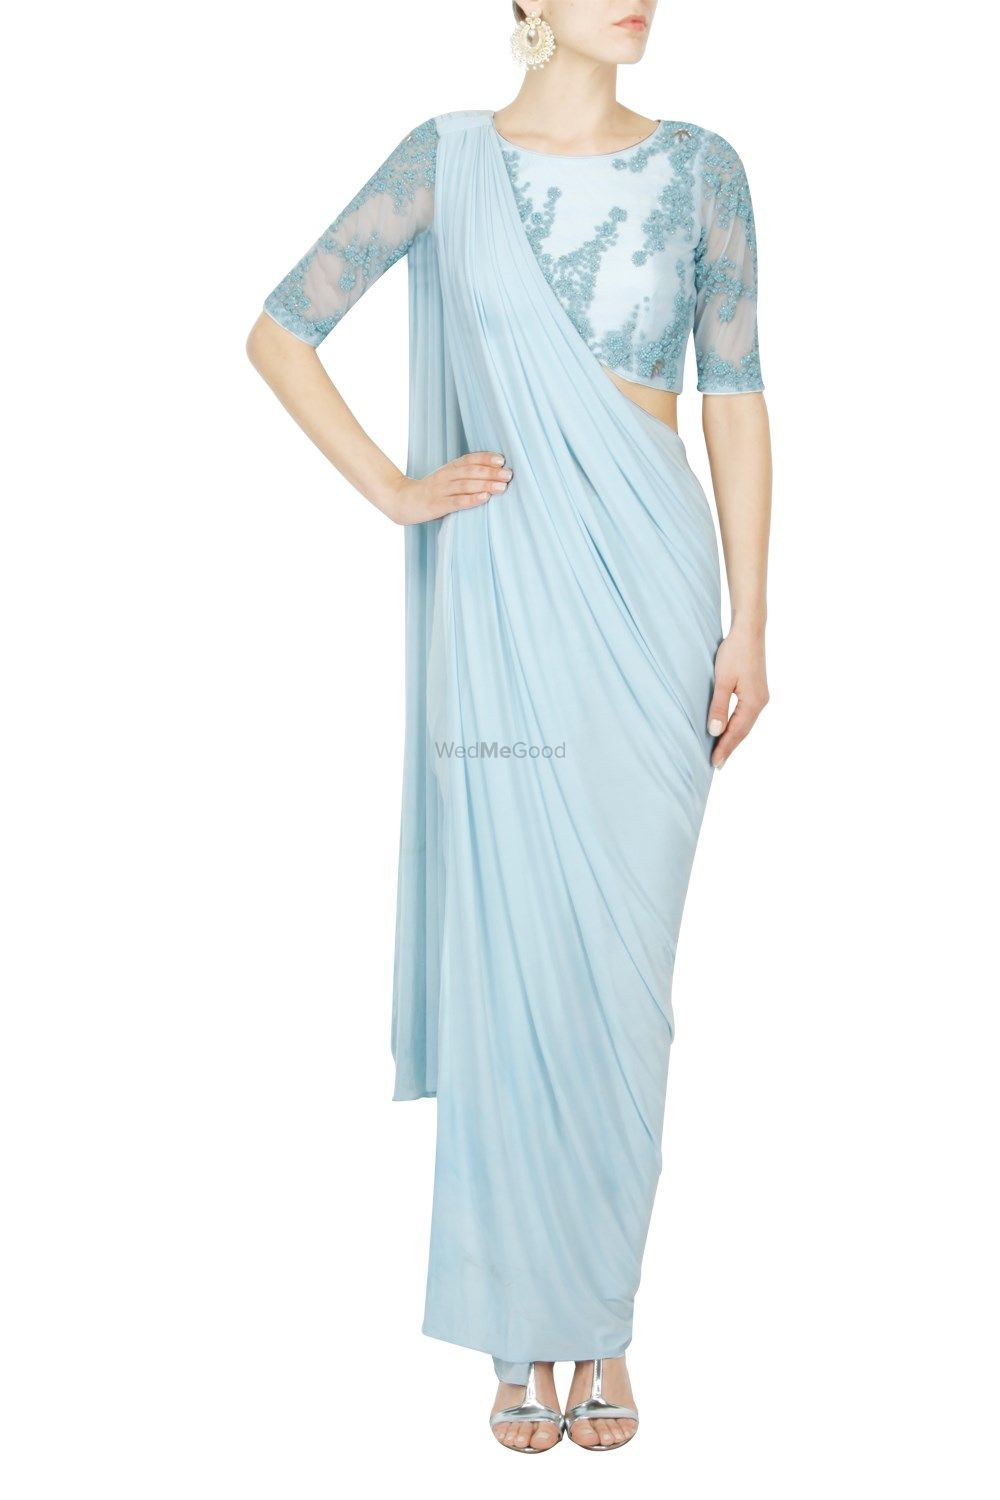 Photo of Powder blue saree gown with beaded blouse